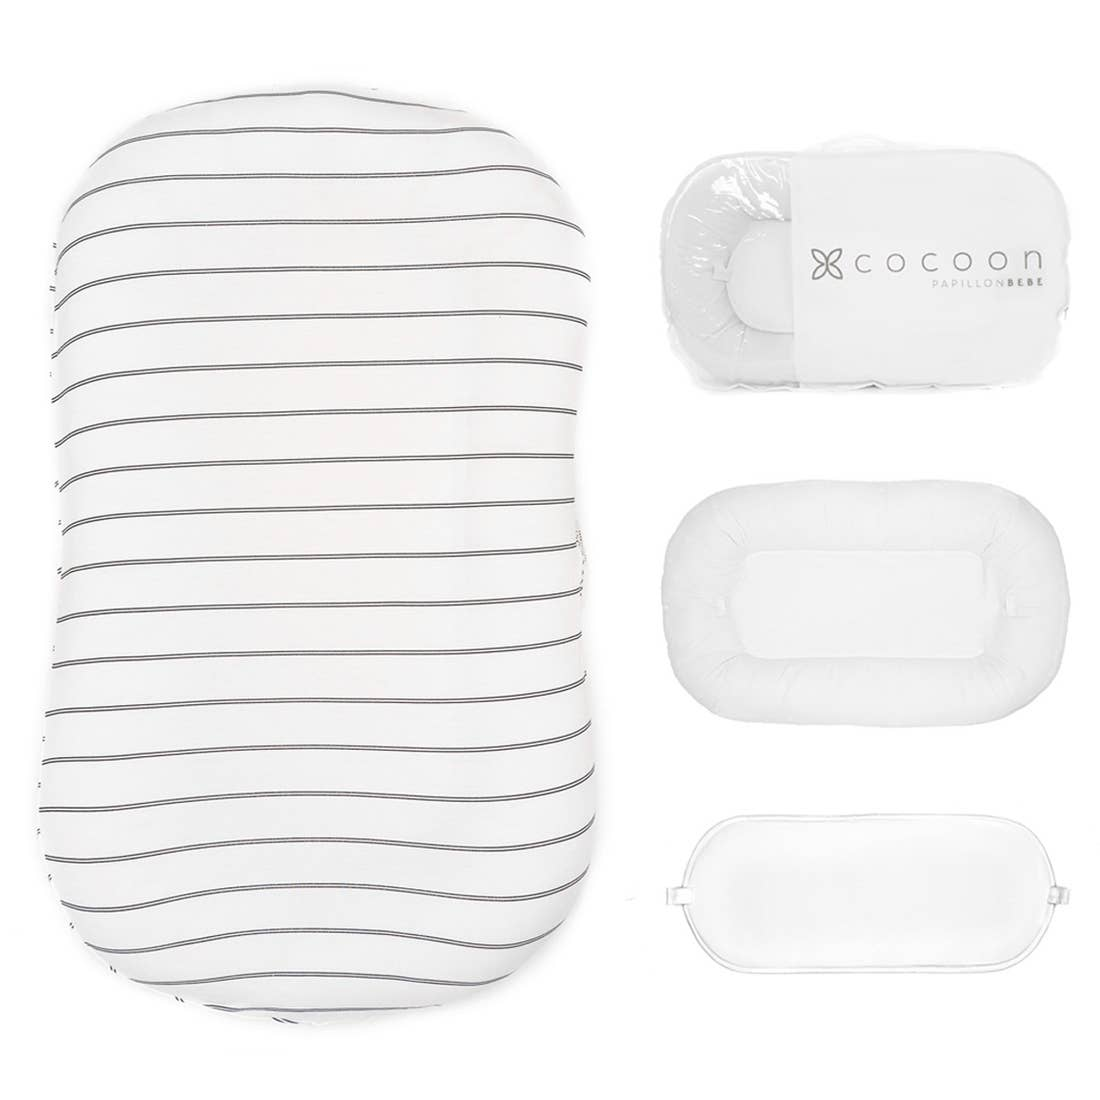 Infant Cocoon Lounger (0-9 months) - Striped Onyx